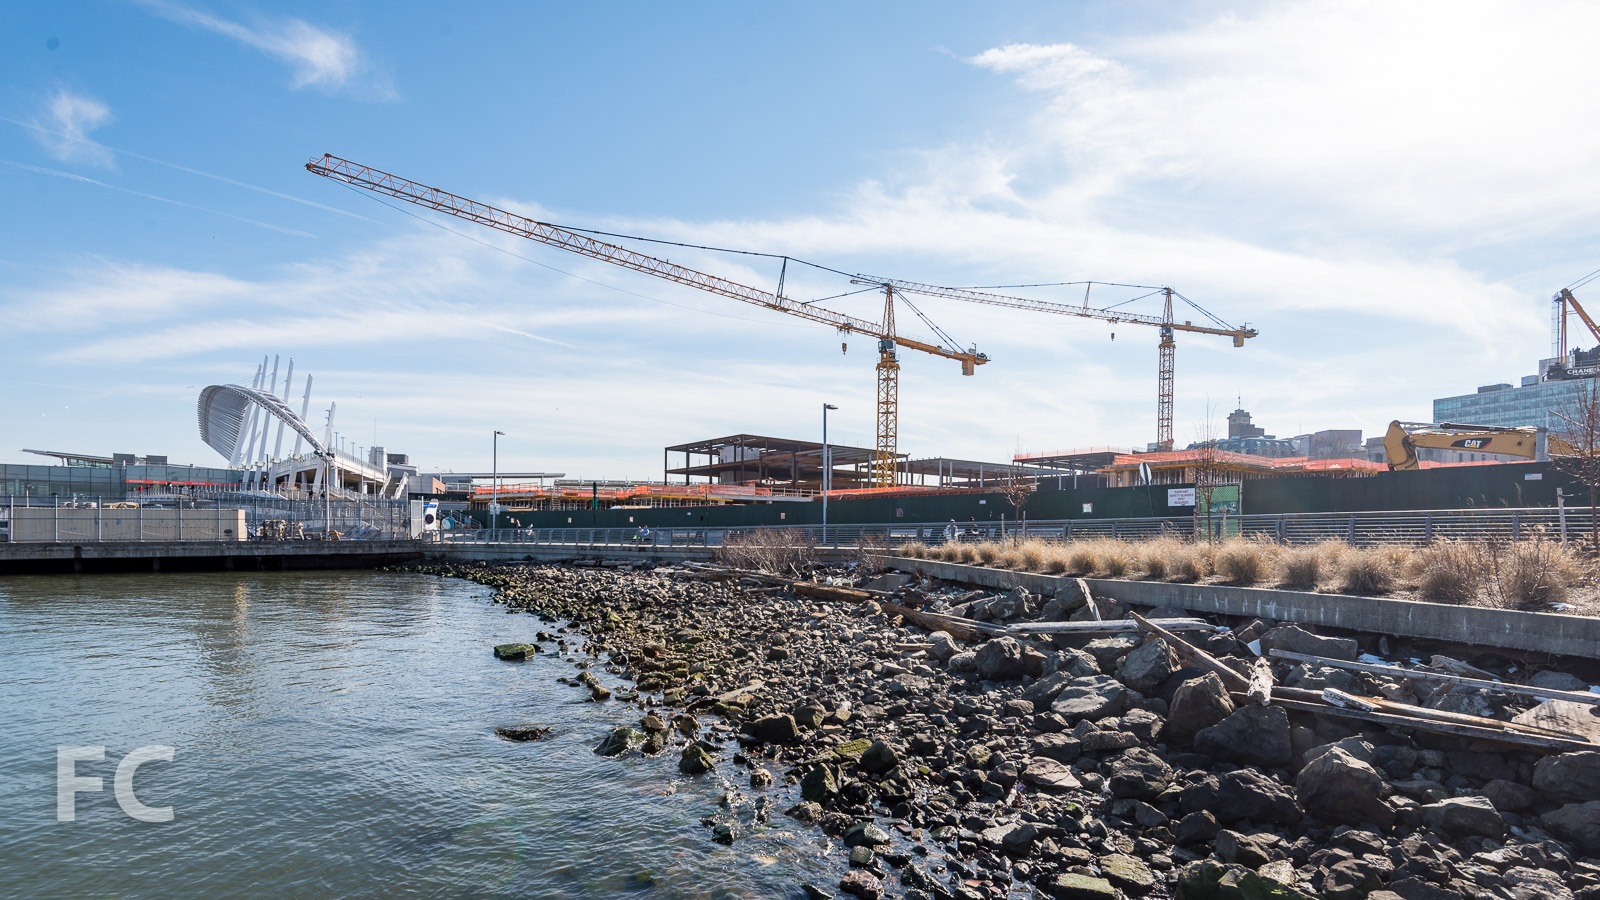 View of the Empire Outlets site from the west.